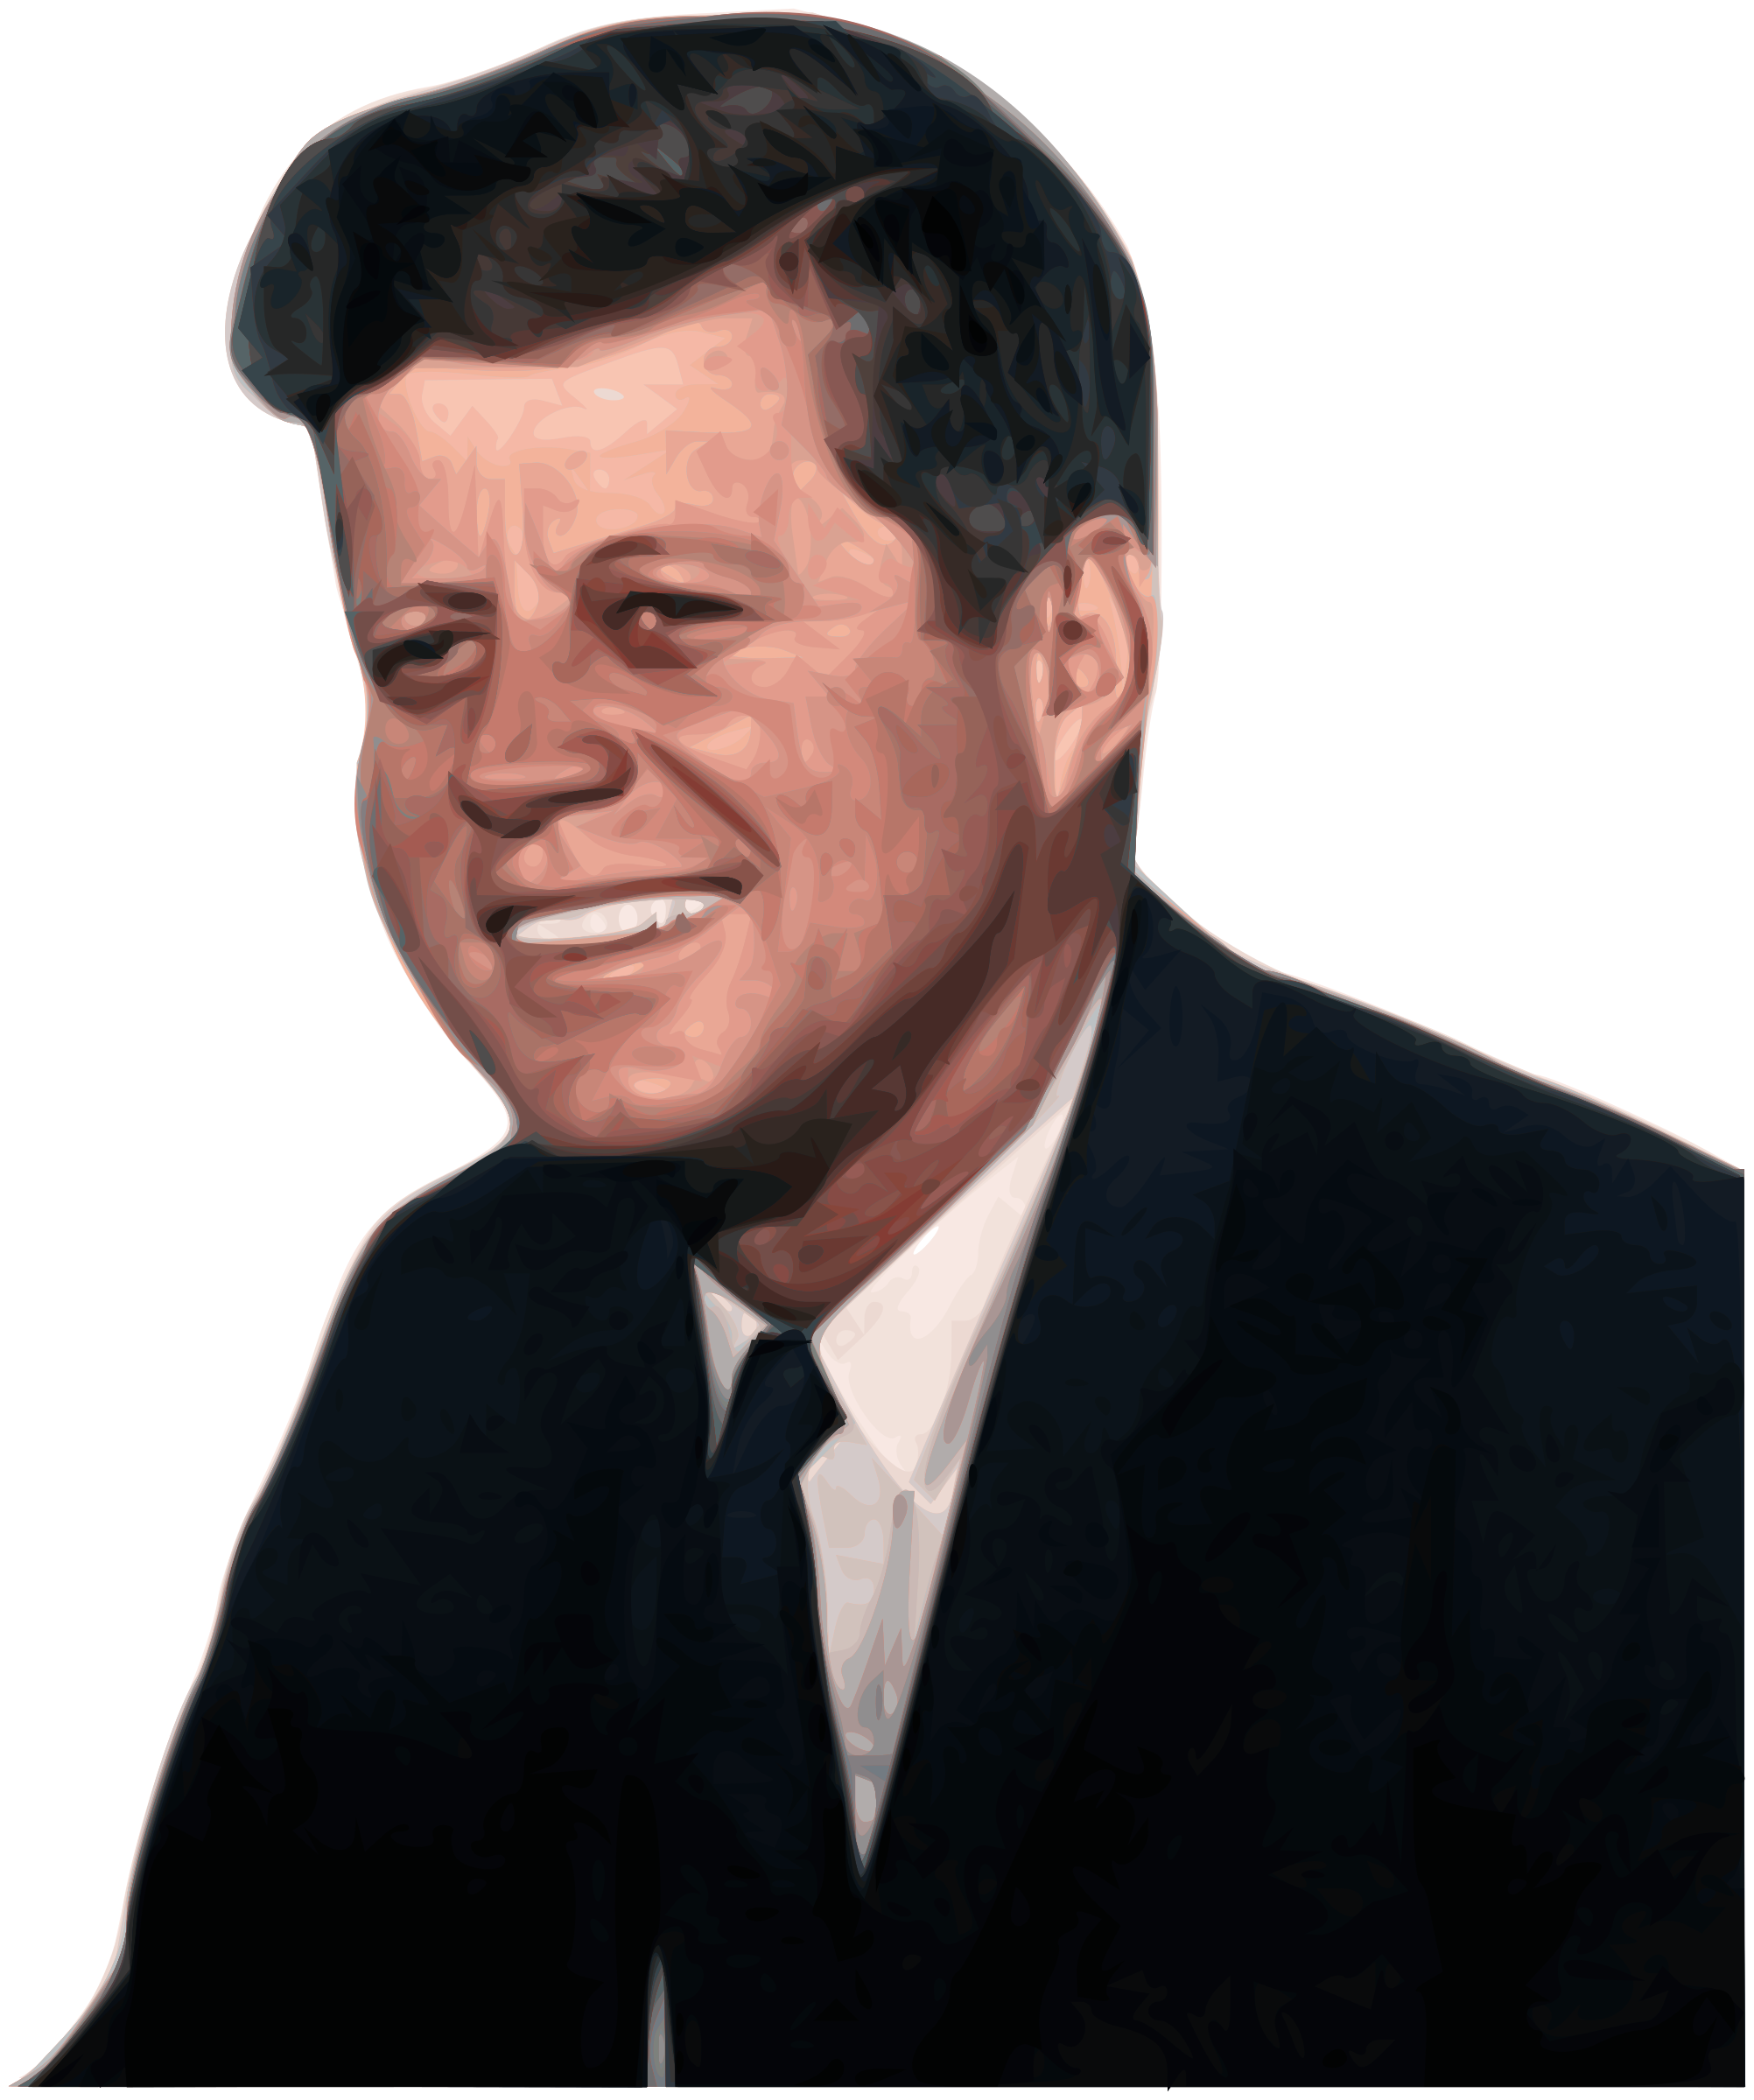 the assassination of the 35th president of the united states of america john f kennedy Presidents of the united states john f kennedy john fitzgerald kennedy (may 29, 1917 - november 22, 1963), often referred to as jack kennedy or jfk, was the 35th (1961 - 1963) president of the united states.